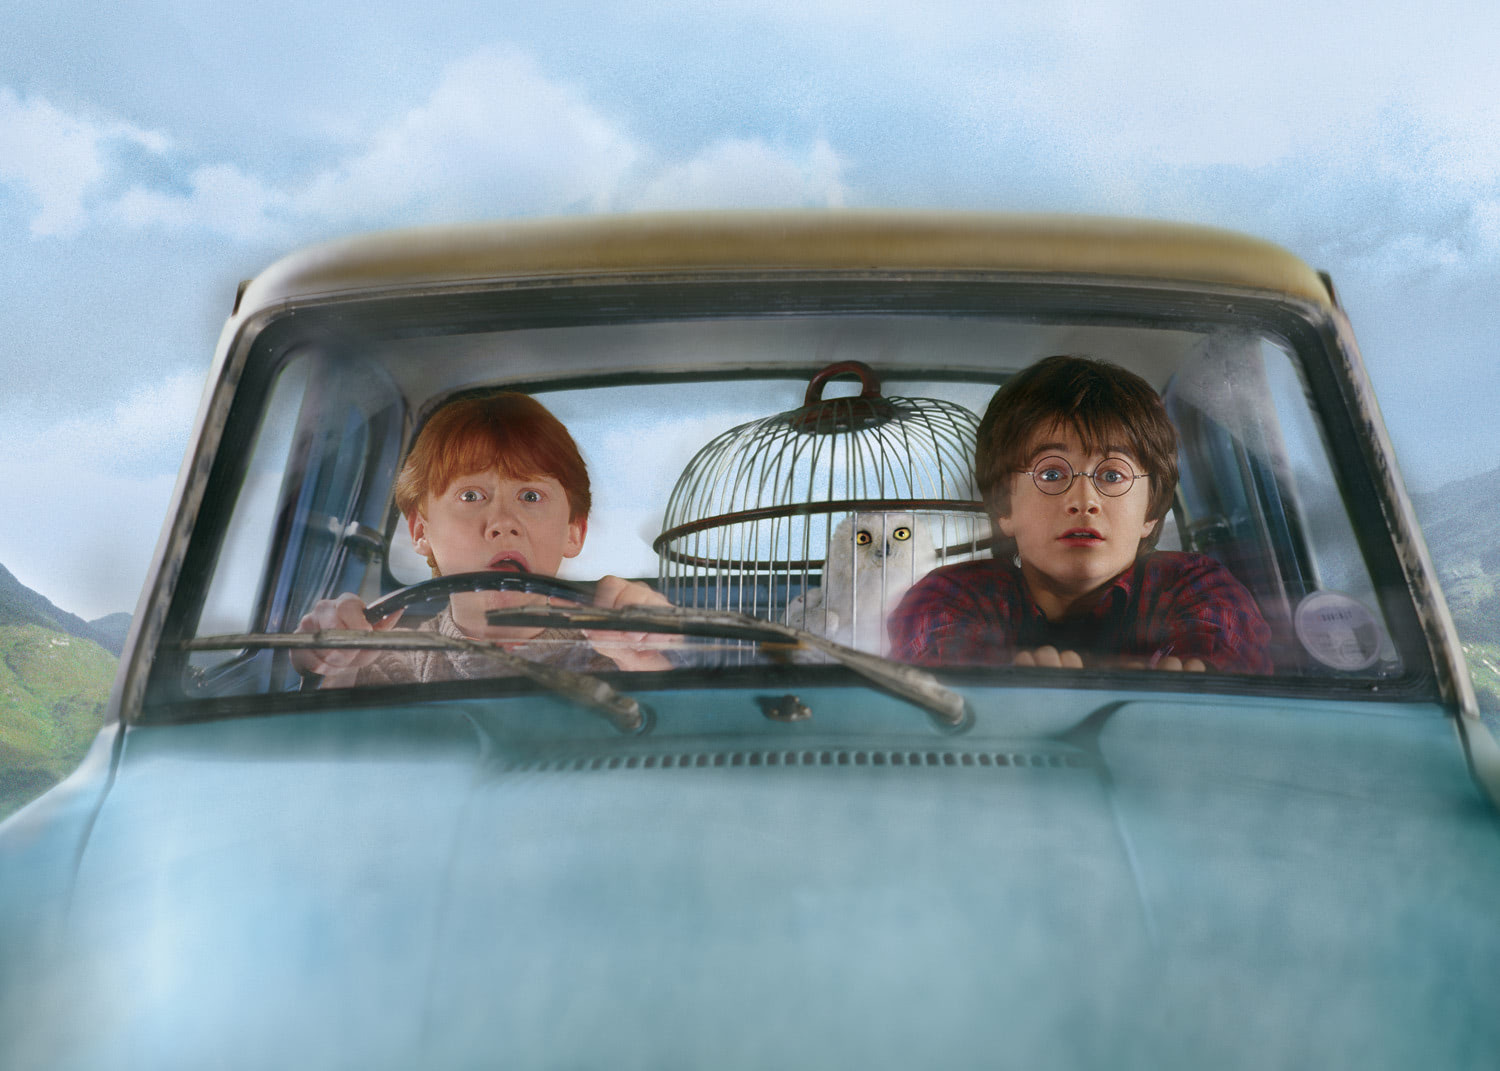 Ron and Harry in the flying car